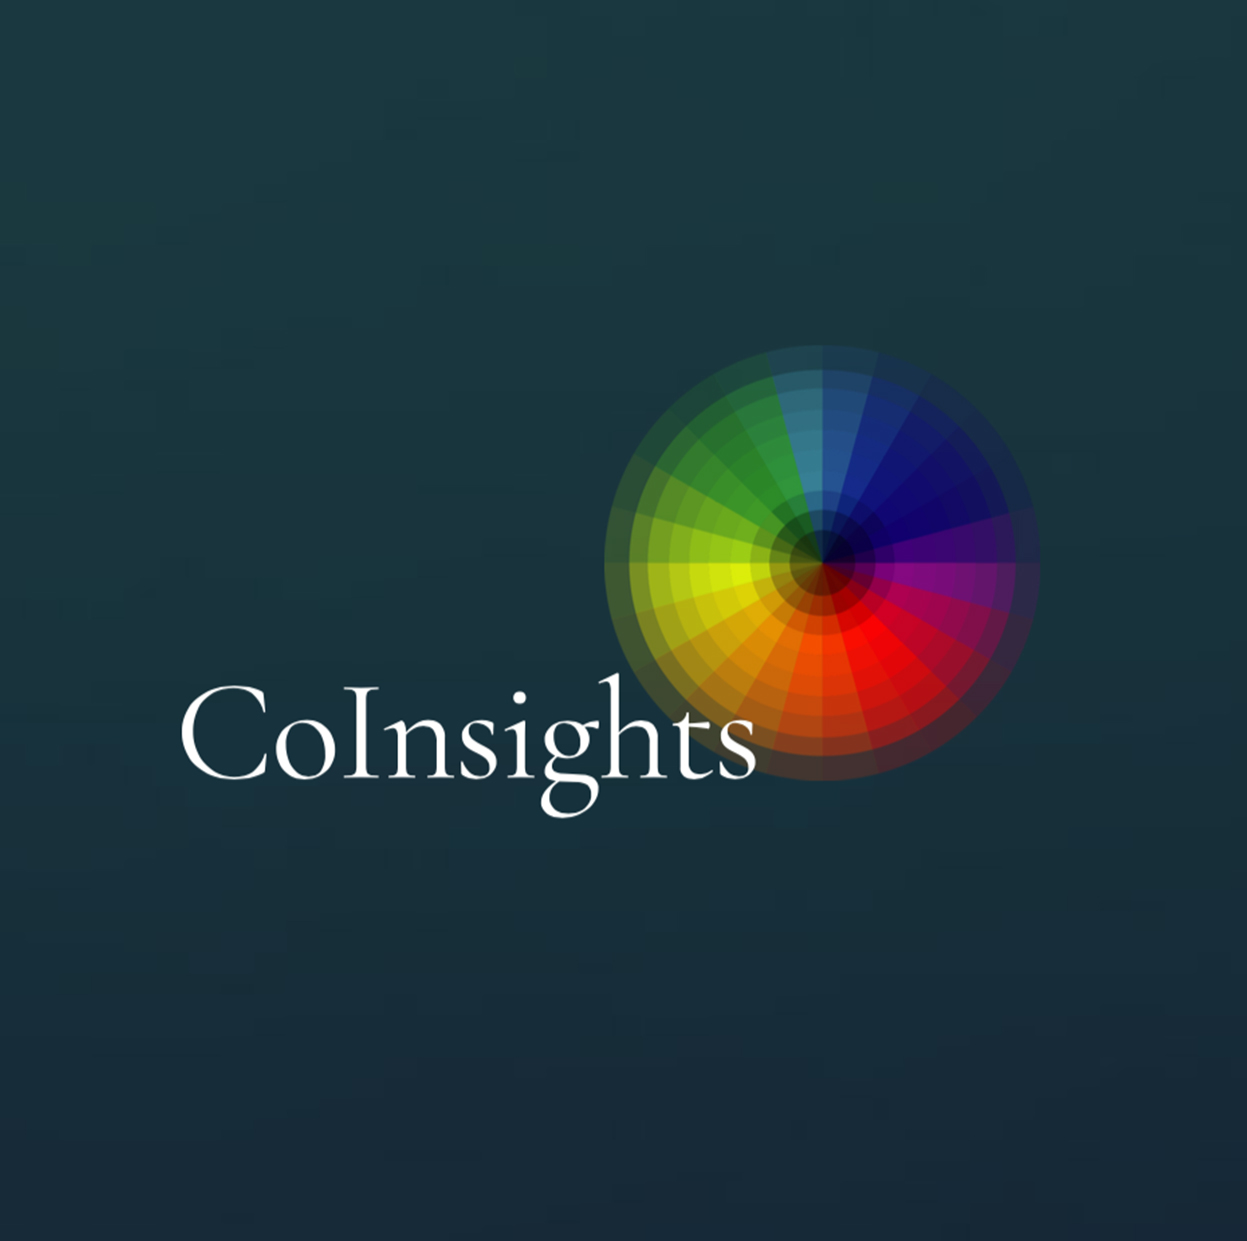 coinsights logo malene kyed light kopi